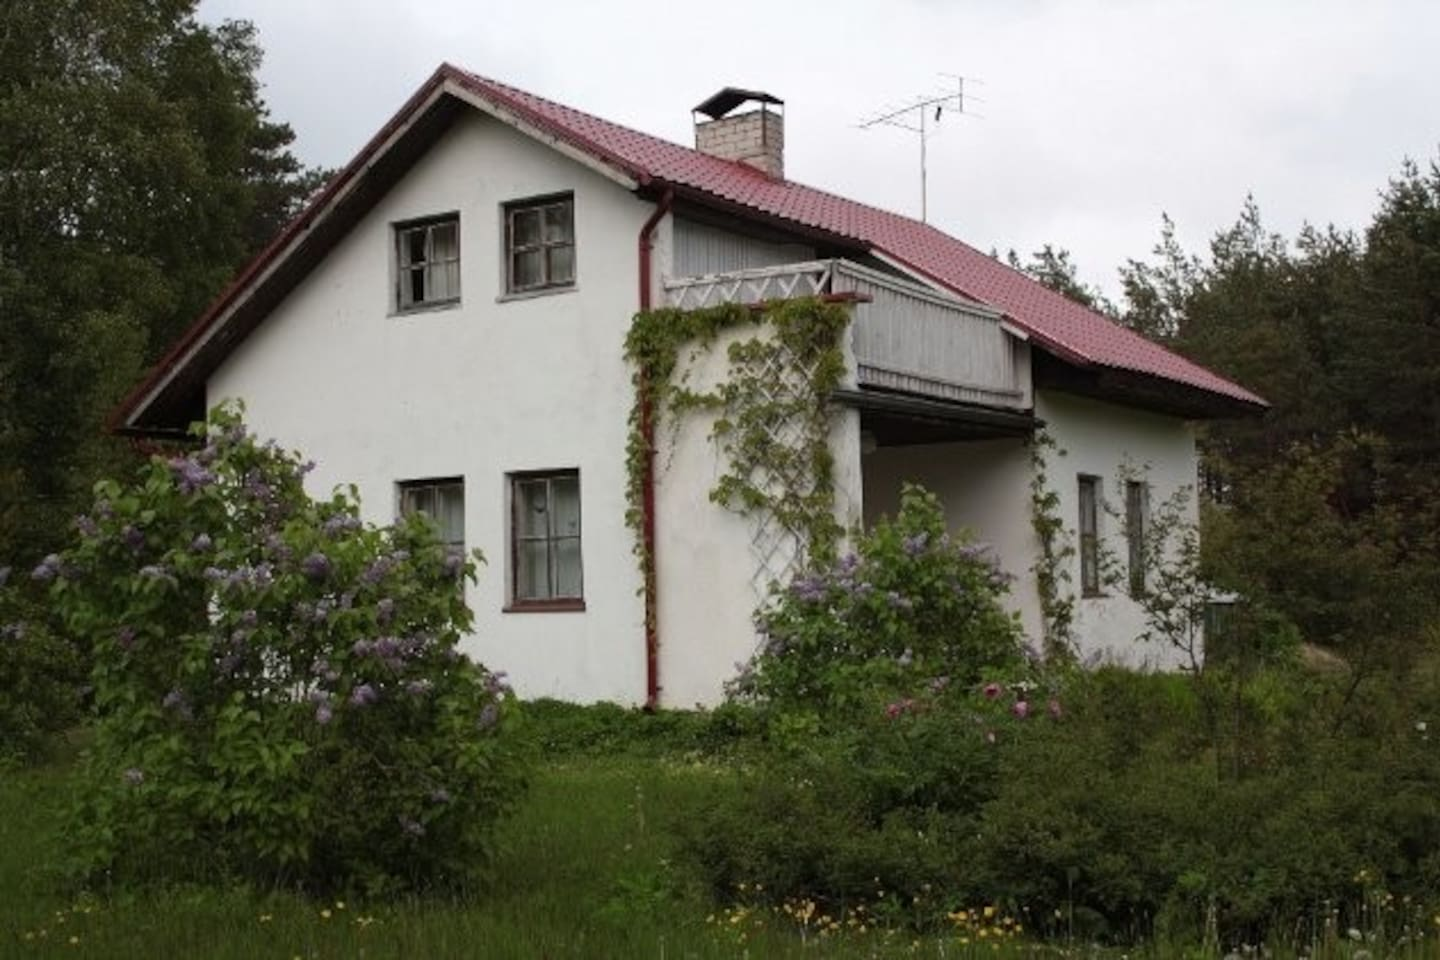 The house seen from the gate.